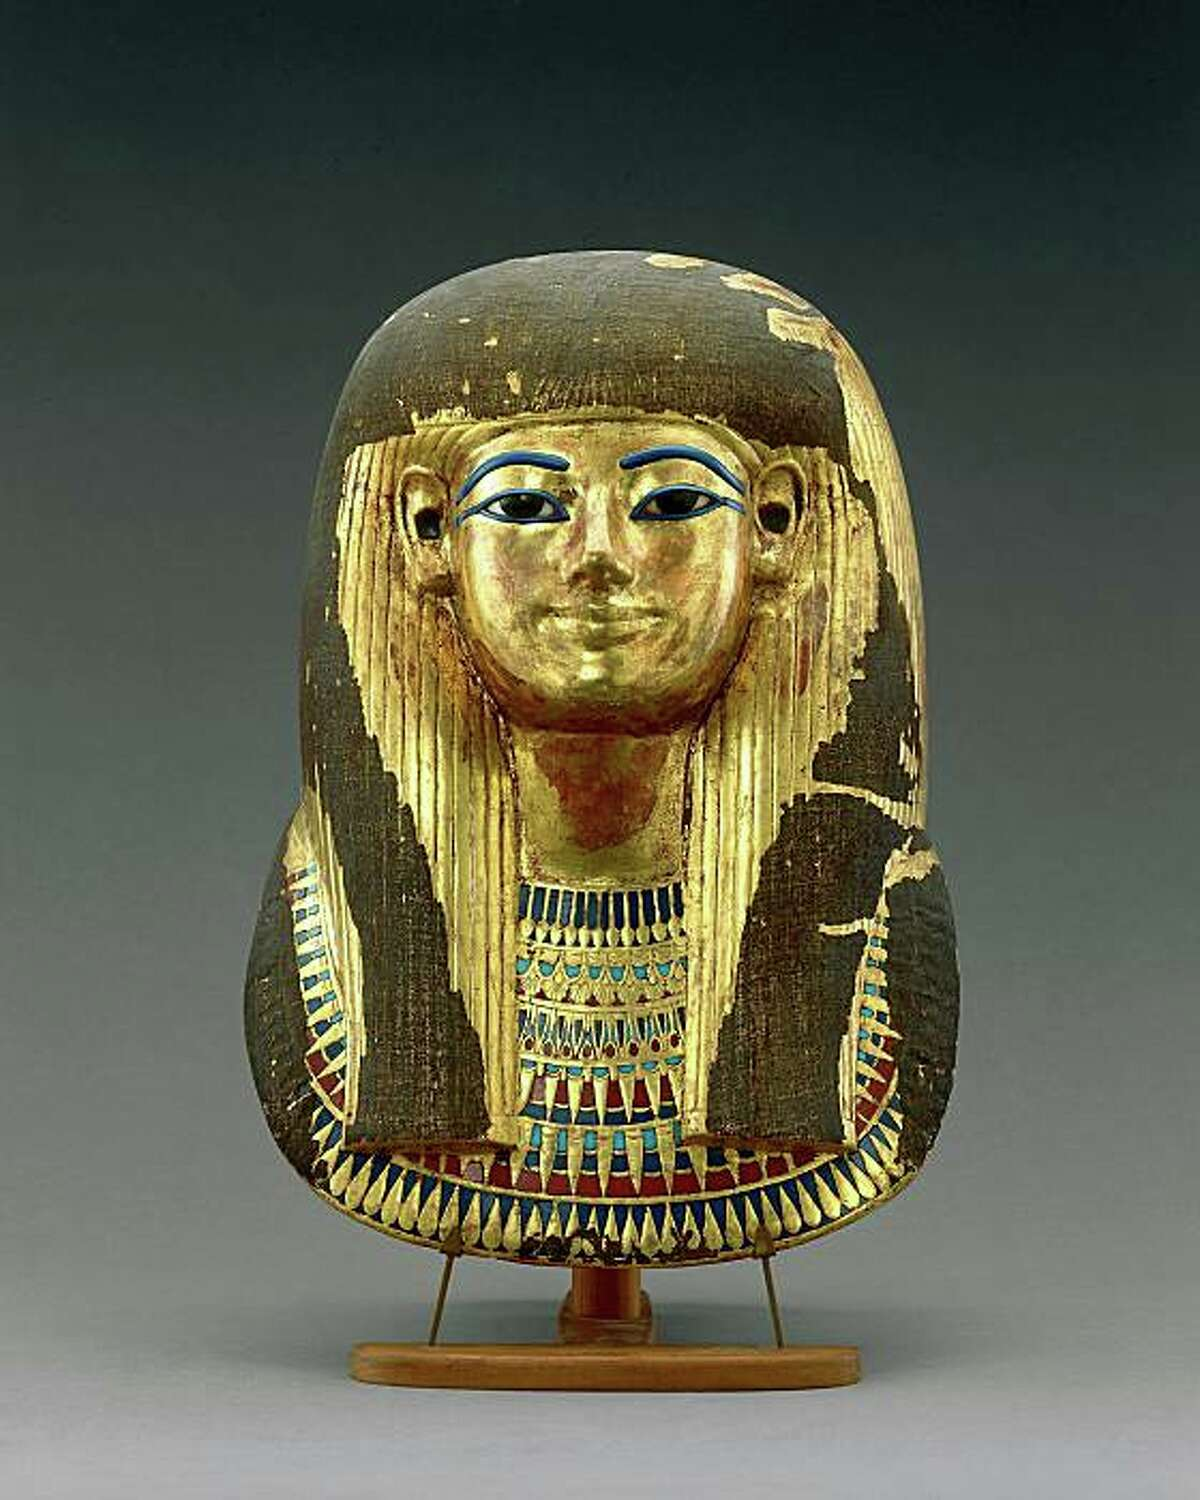 Tutankhamun and the Golden Age of the Pharaohs. Gilded Funerary Mask of Tijuya. Dynasty 18, reign of Amenhotep III (1390-1353 BC) Gilded cartonnage. Egyptian Museum, Cairo.